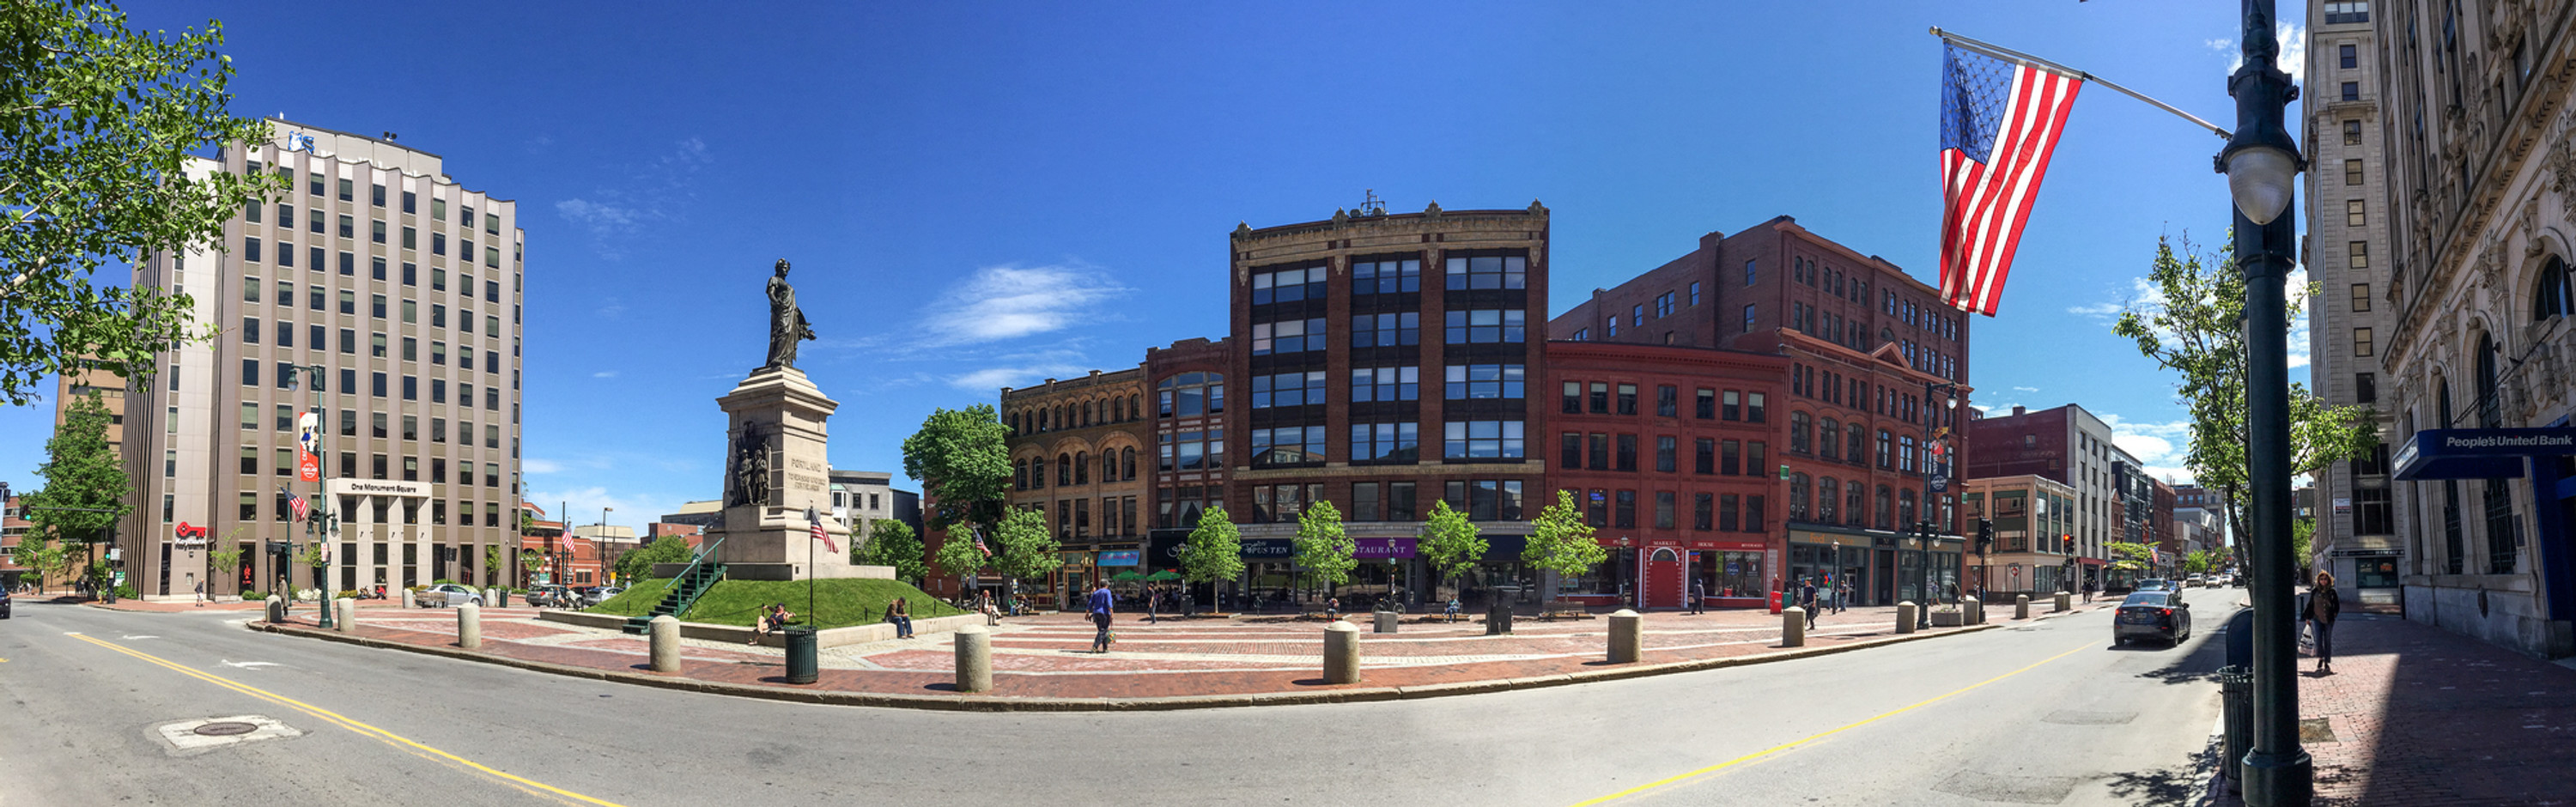 Monument_Square_panorama,_Portland_Maine